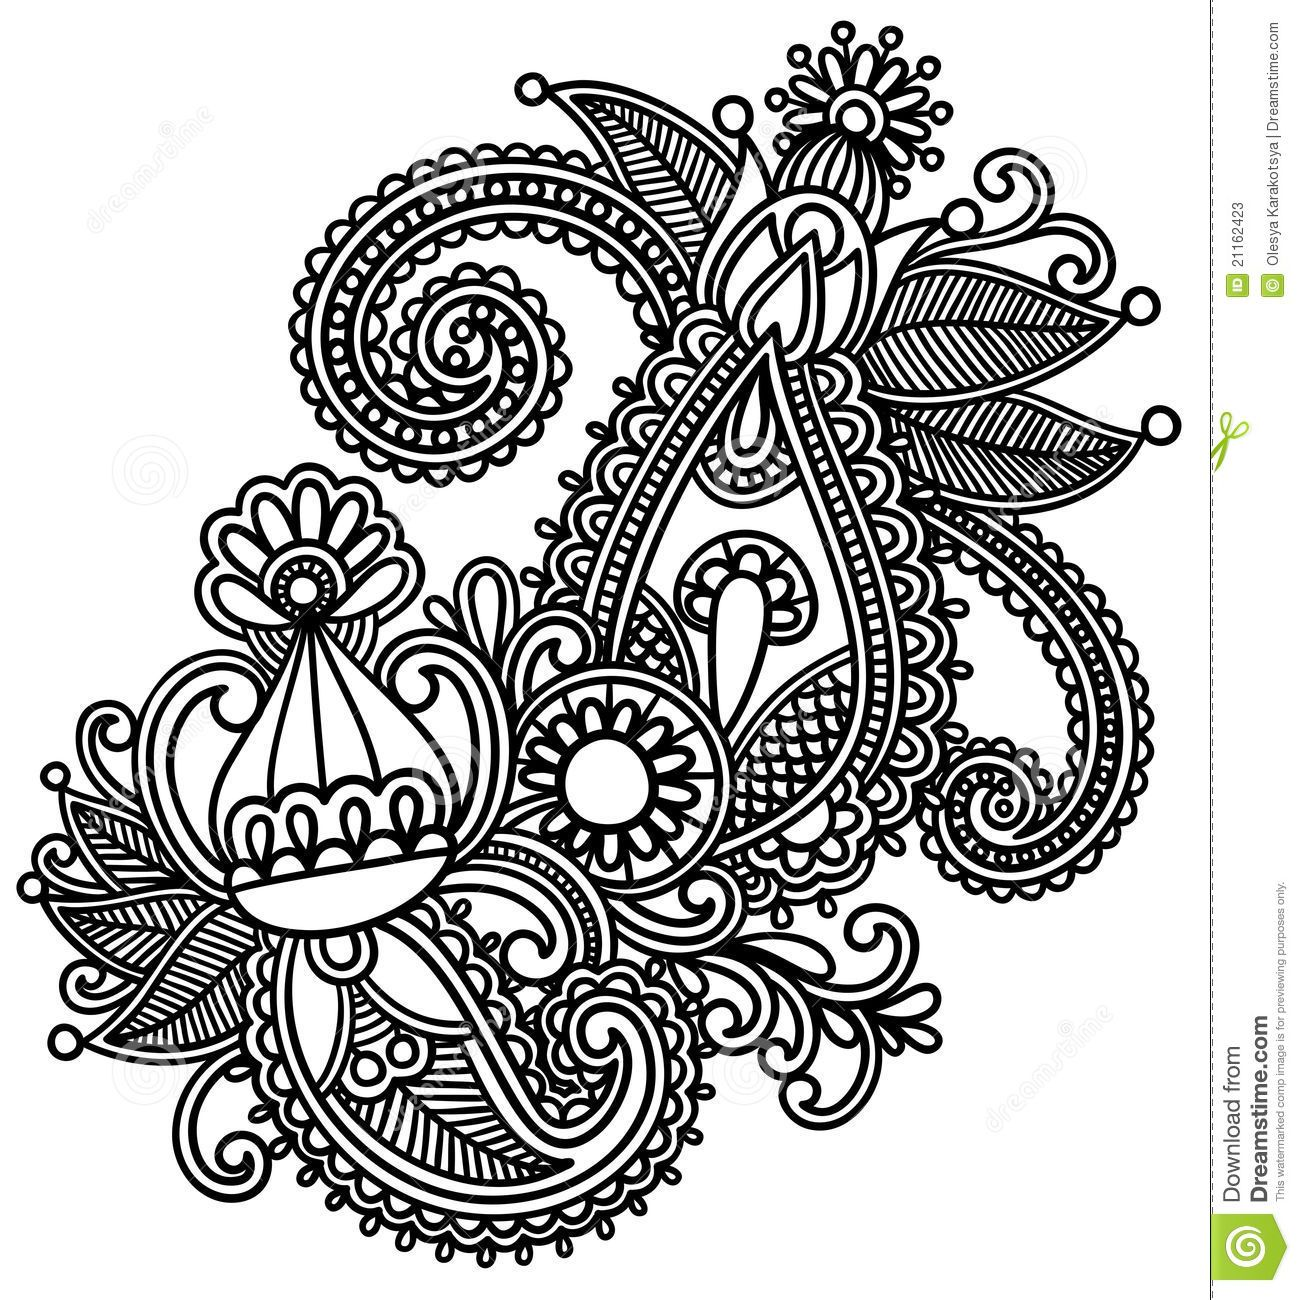 Coloring pages of mehndi hand pattern - Moroccan Henna Silhouette Hand Drawn Abstract Henna Mendie Flowers Doodle Vector Illustration